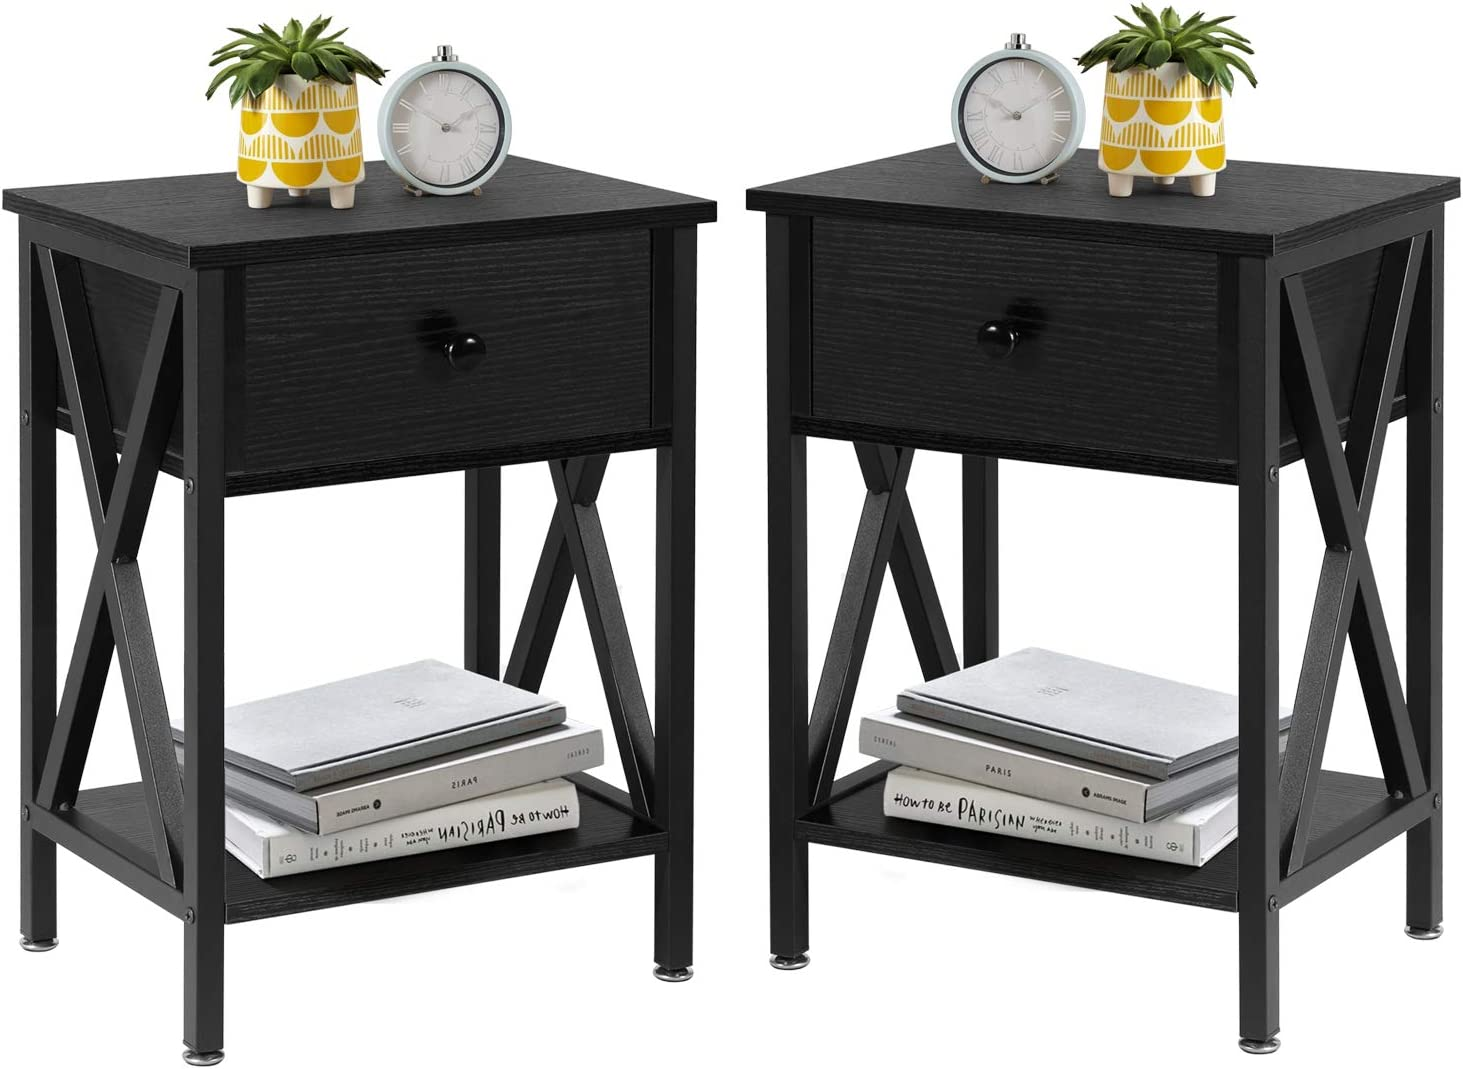 VECELO Modern Versatile Nightstands X-Design Side End Table Night Stand Storage Shelf with Bin Drawer for Living Room Bedroom, Set of 2 (Black)